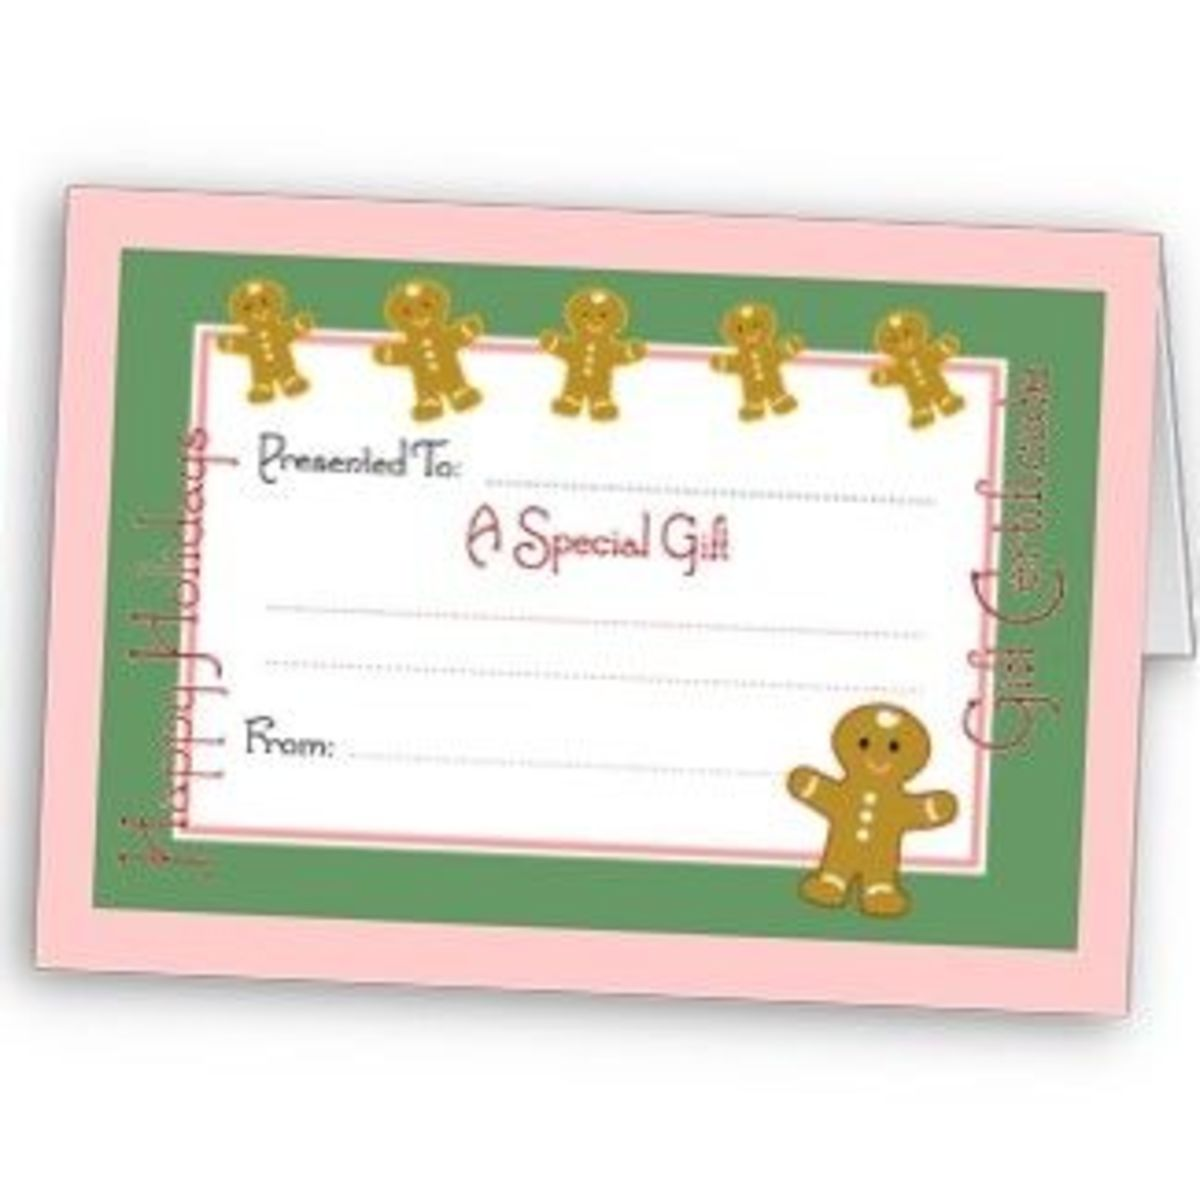 Christmas card gift certificate - personalize at Zazzle.com